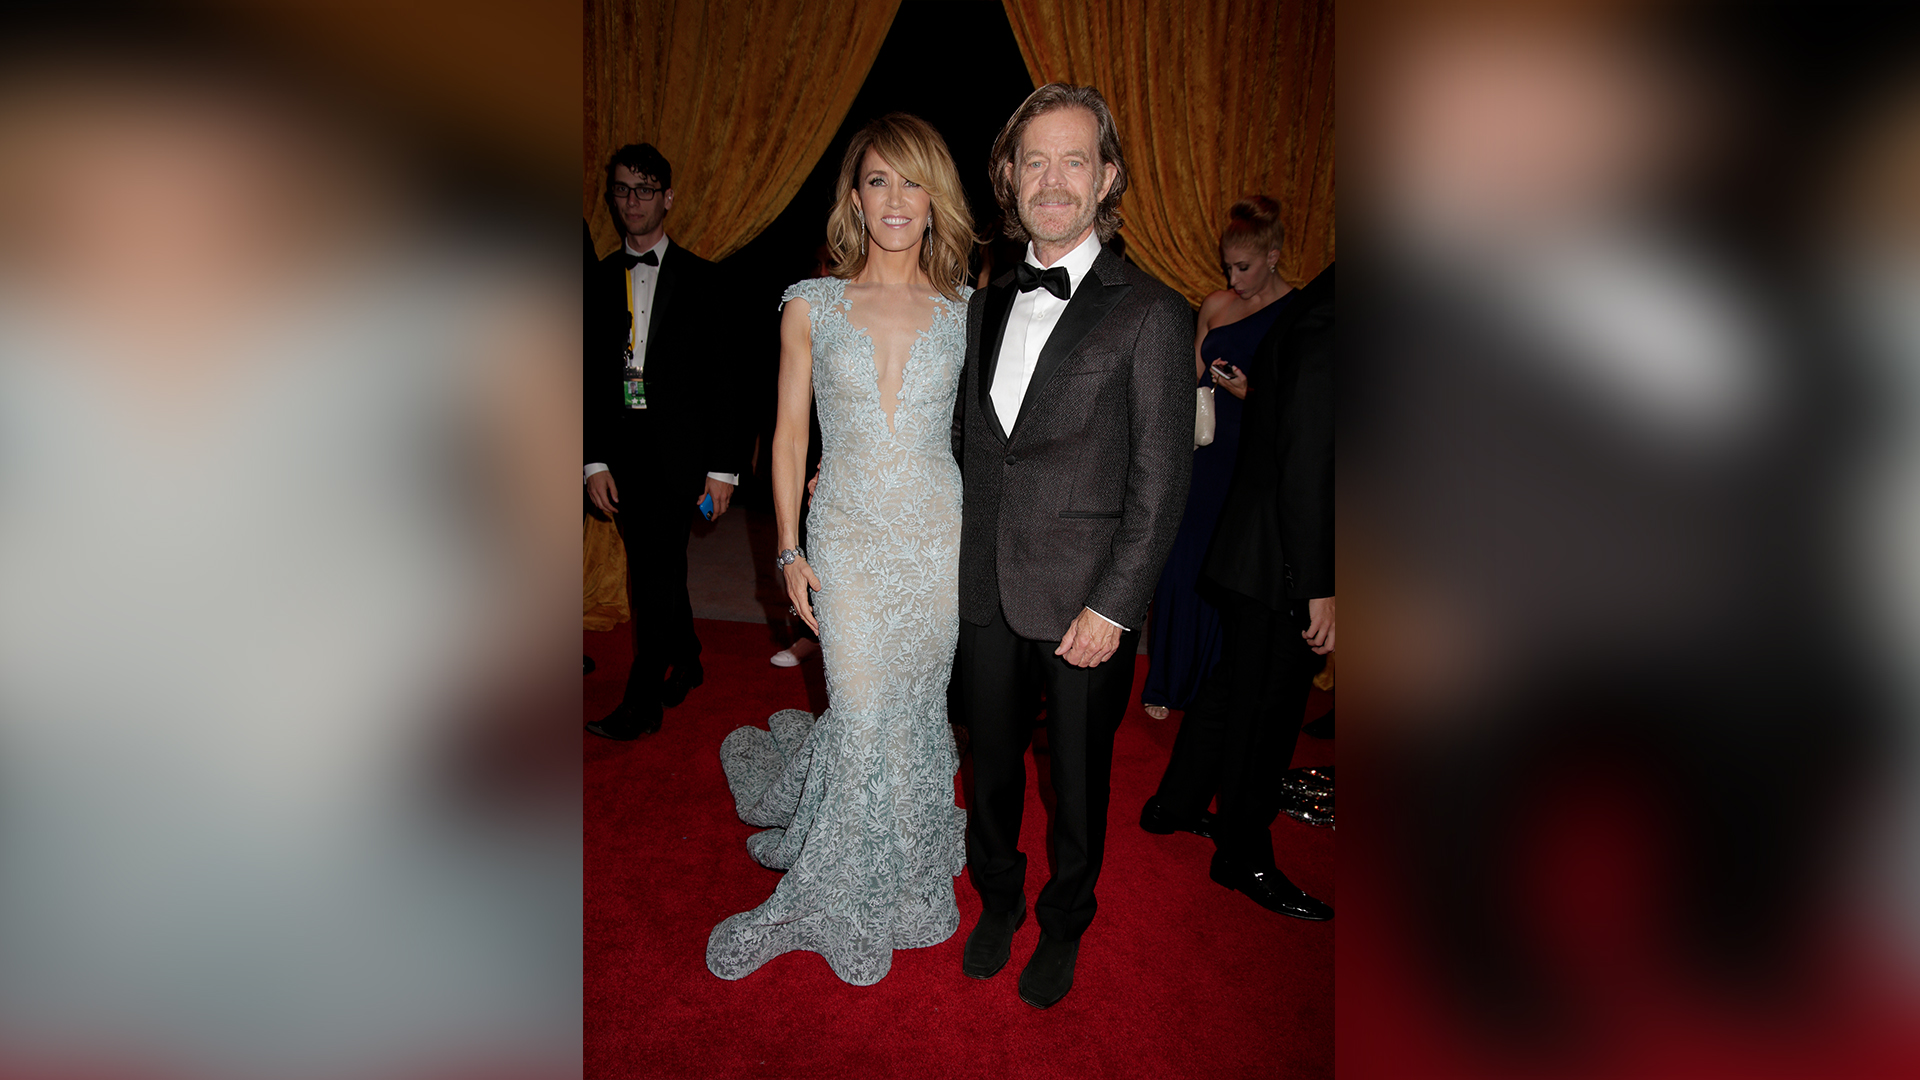 Felicity Huffman from American Crime and actor William H. Macy from Shameless